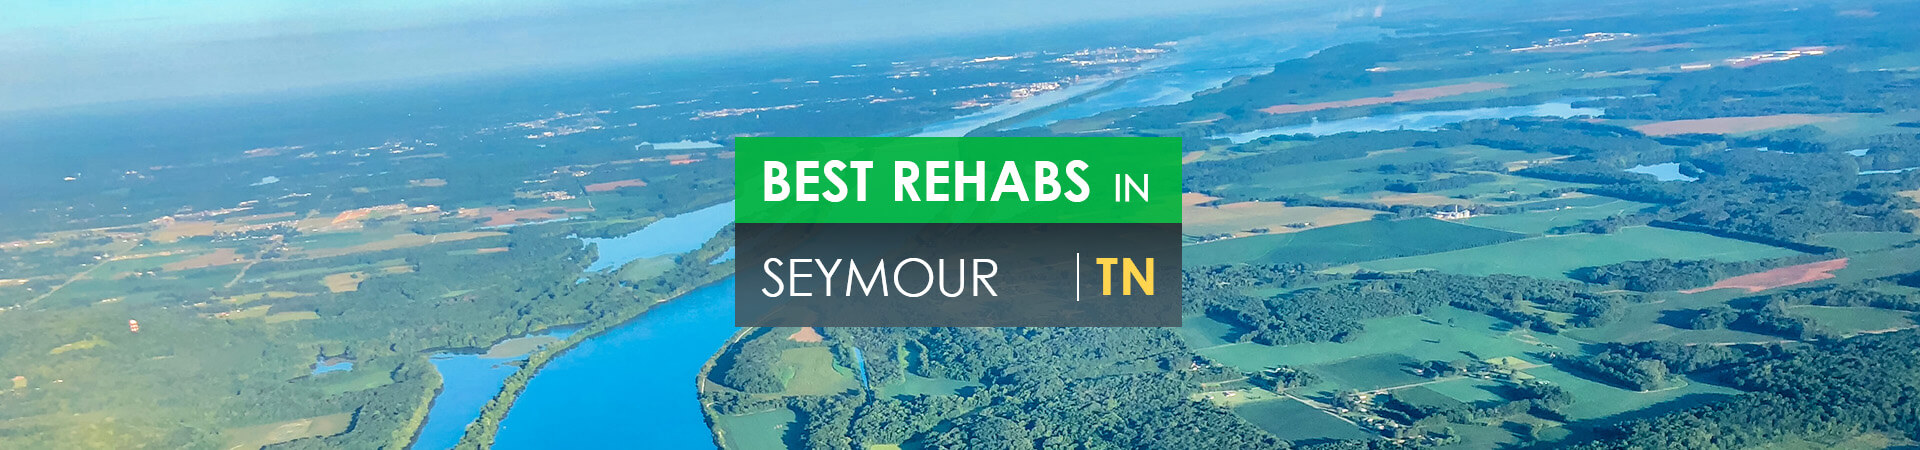 Best rehabs in Seymour, TN